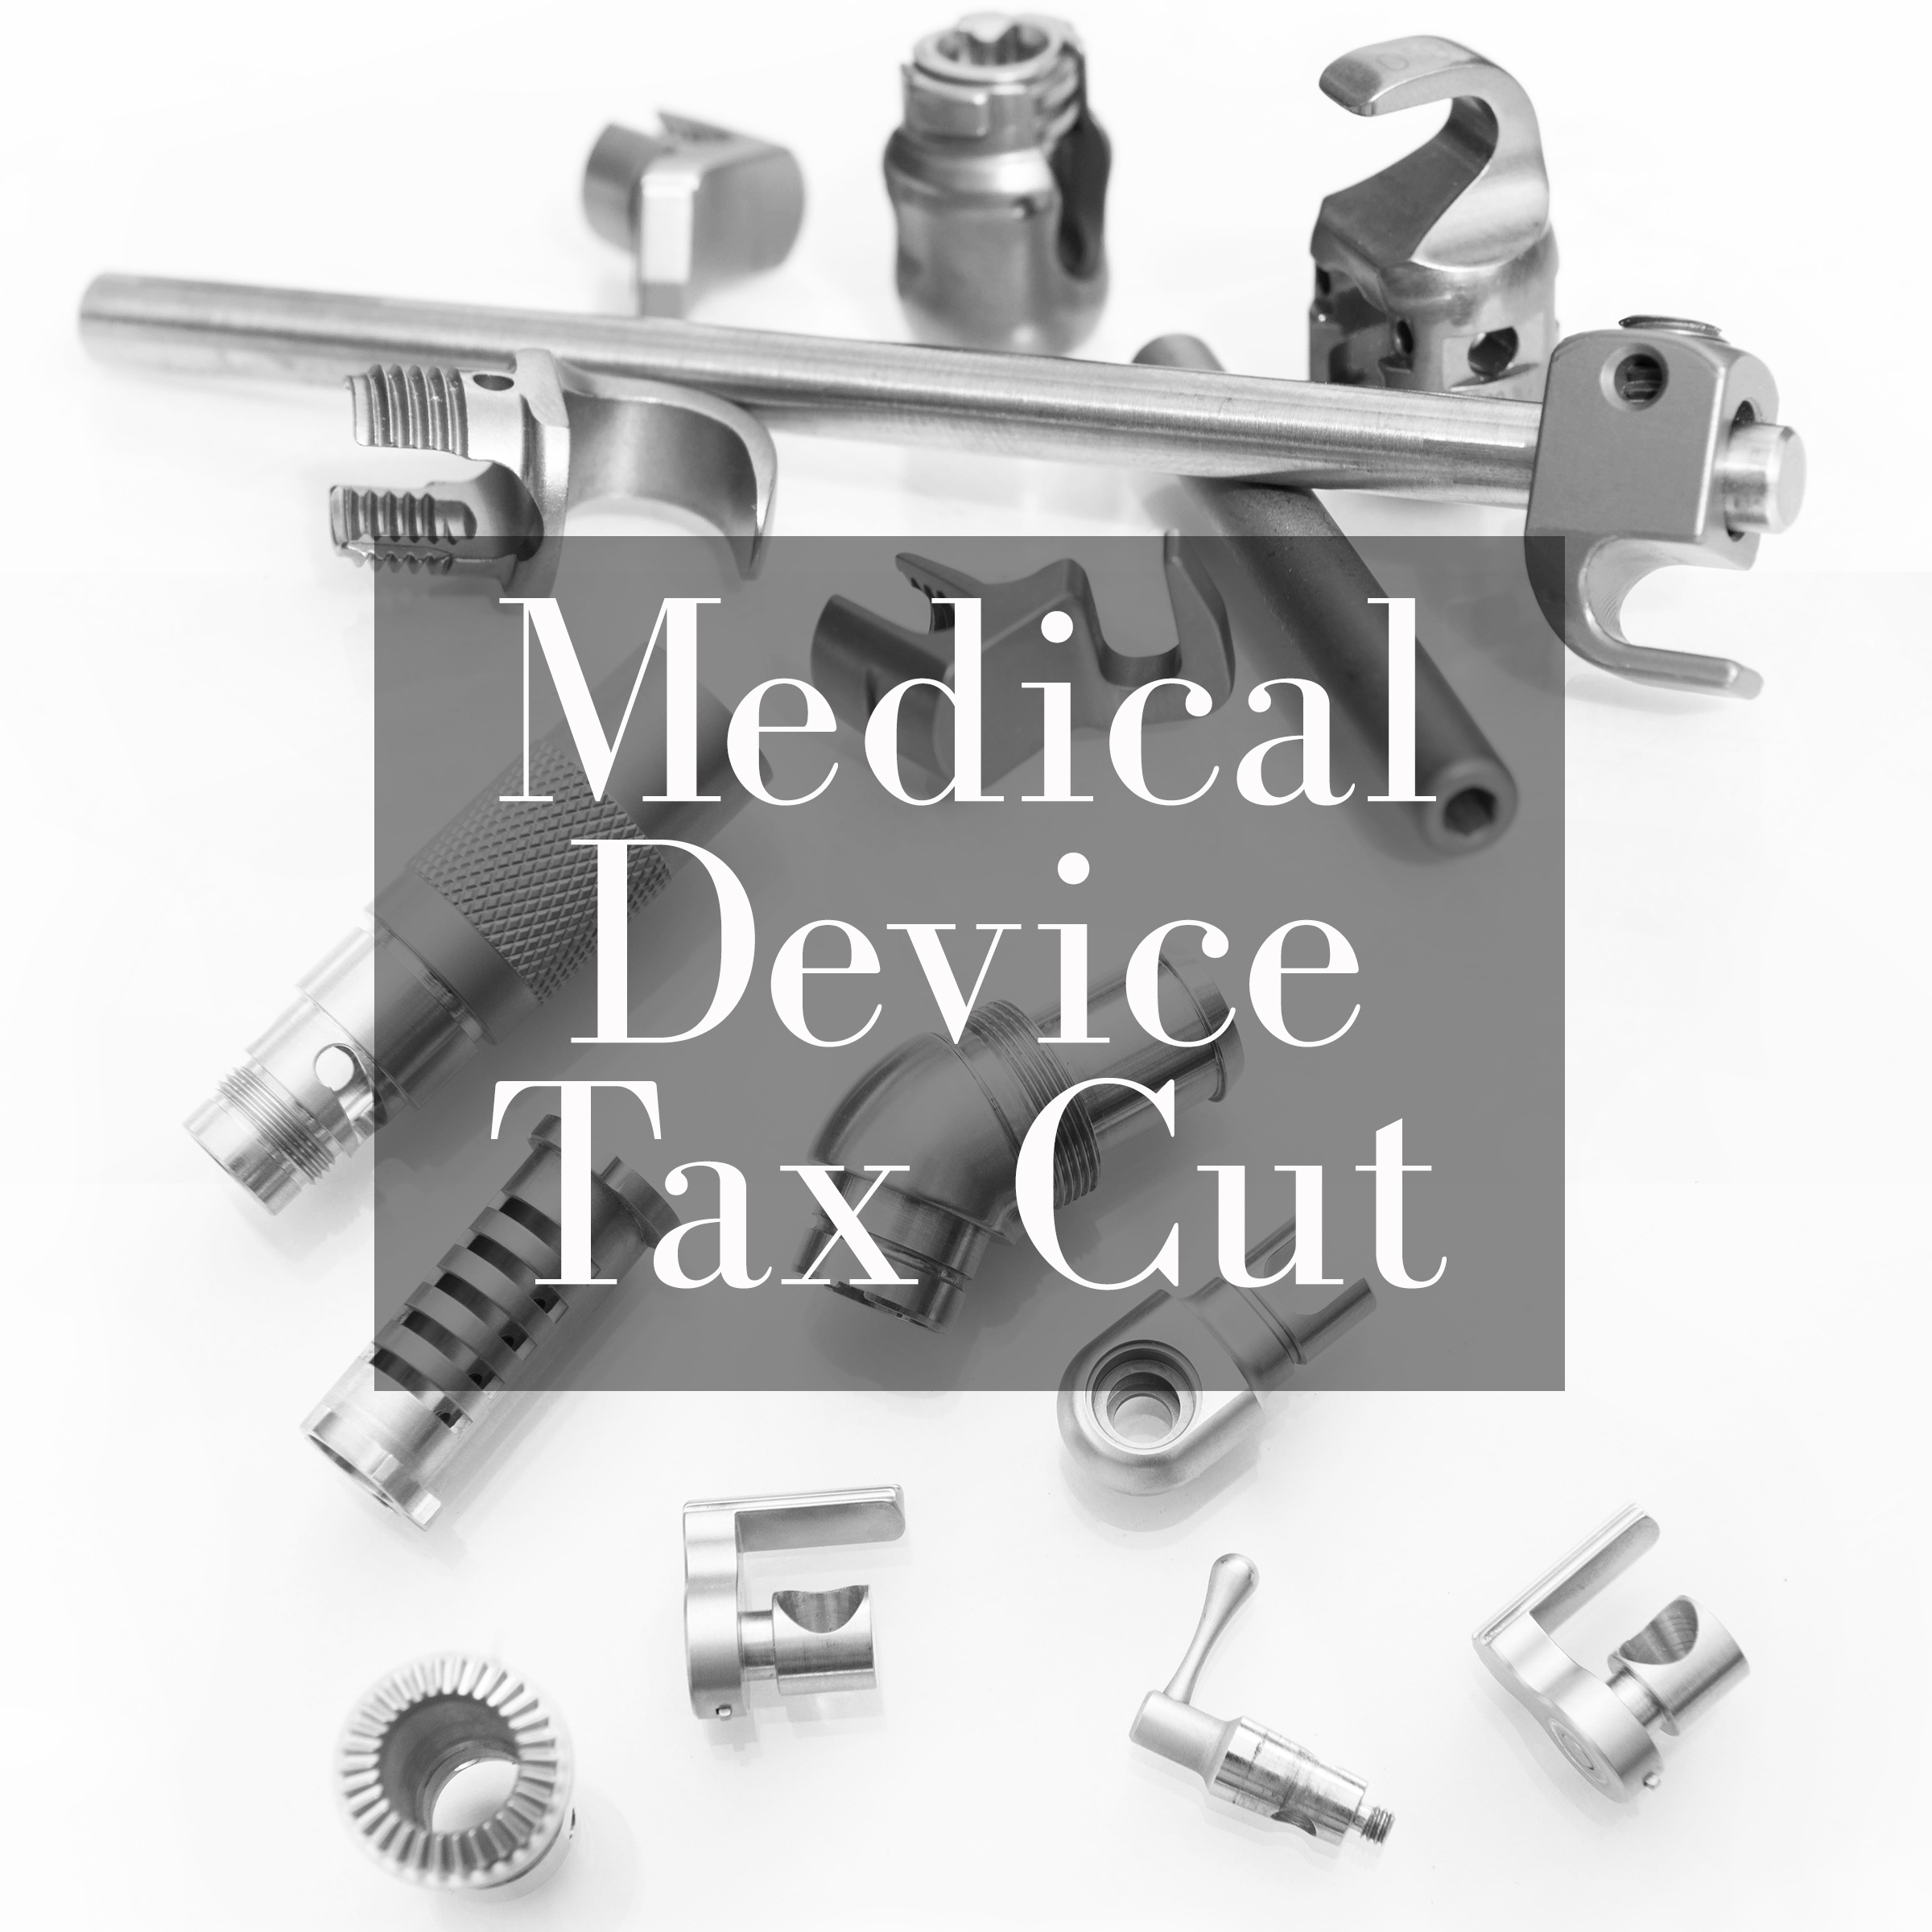 Congress Suspends Medical Device Tax